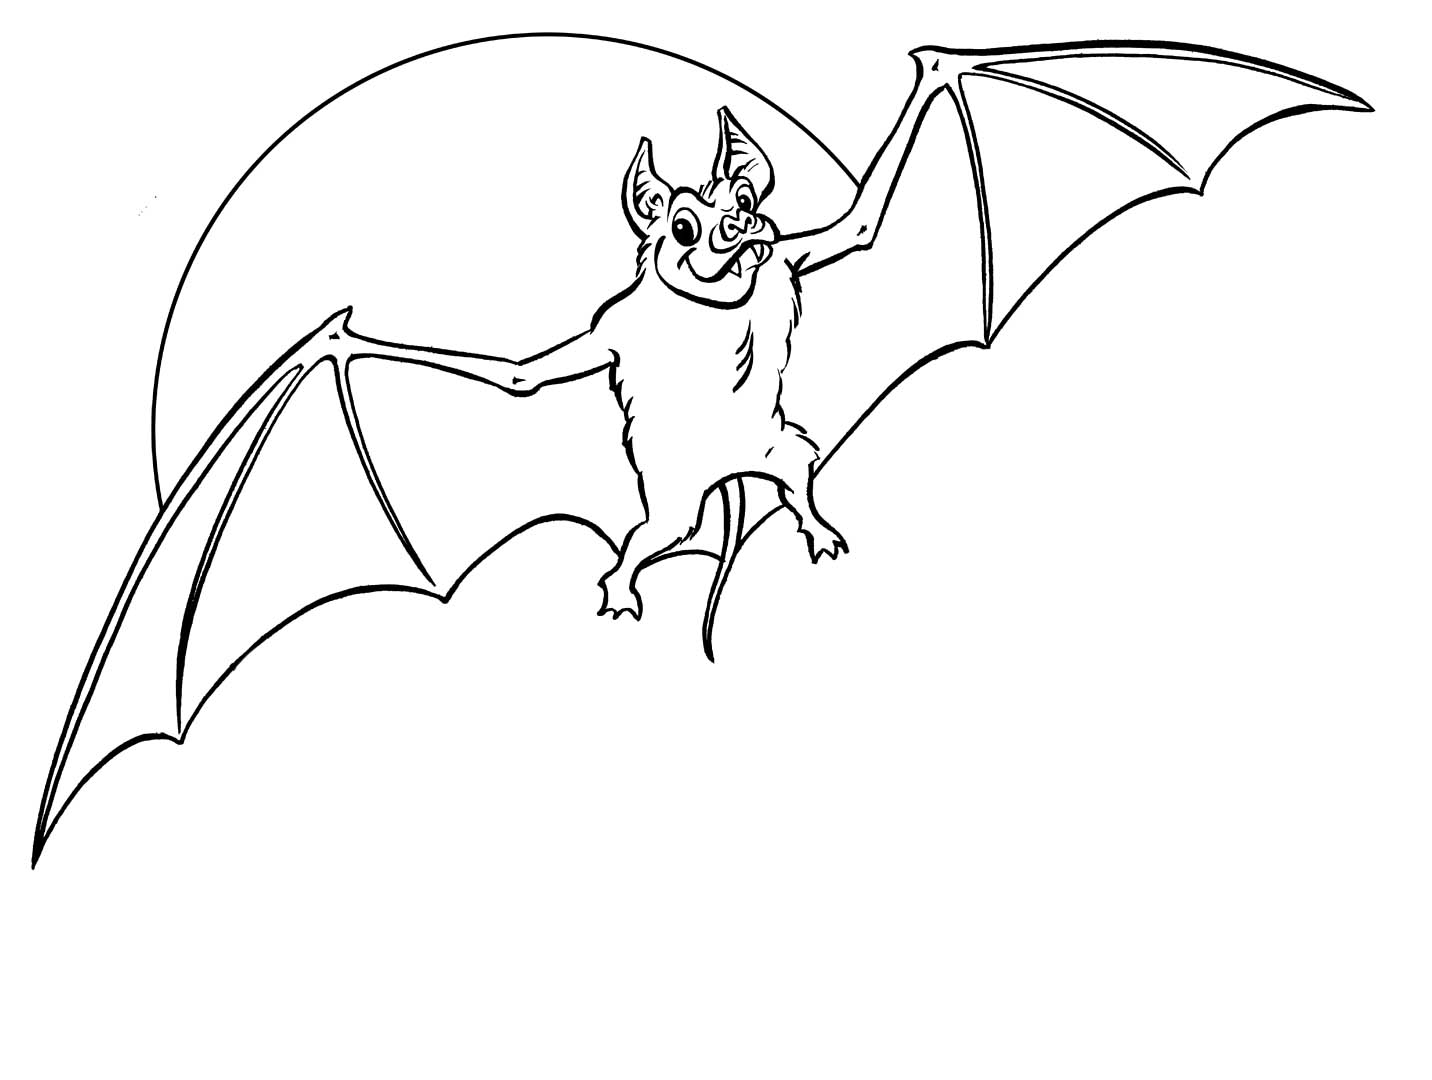 bat coloring pages on cute halloween bats coloring pages for kids